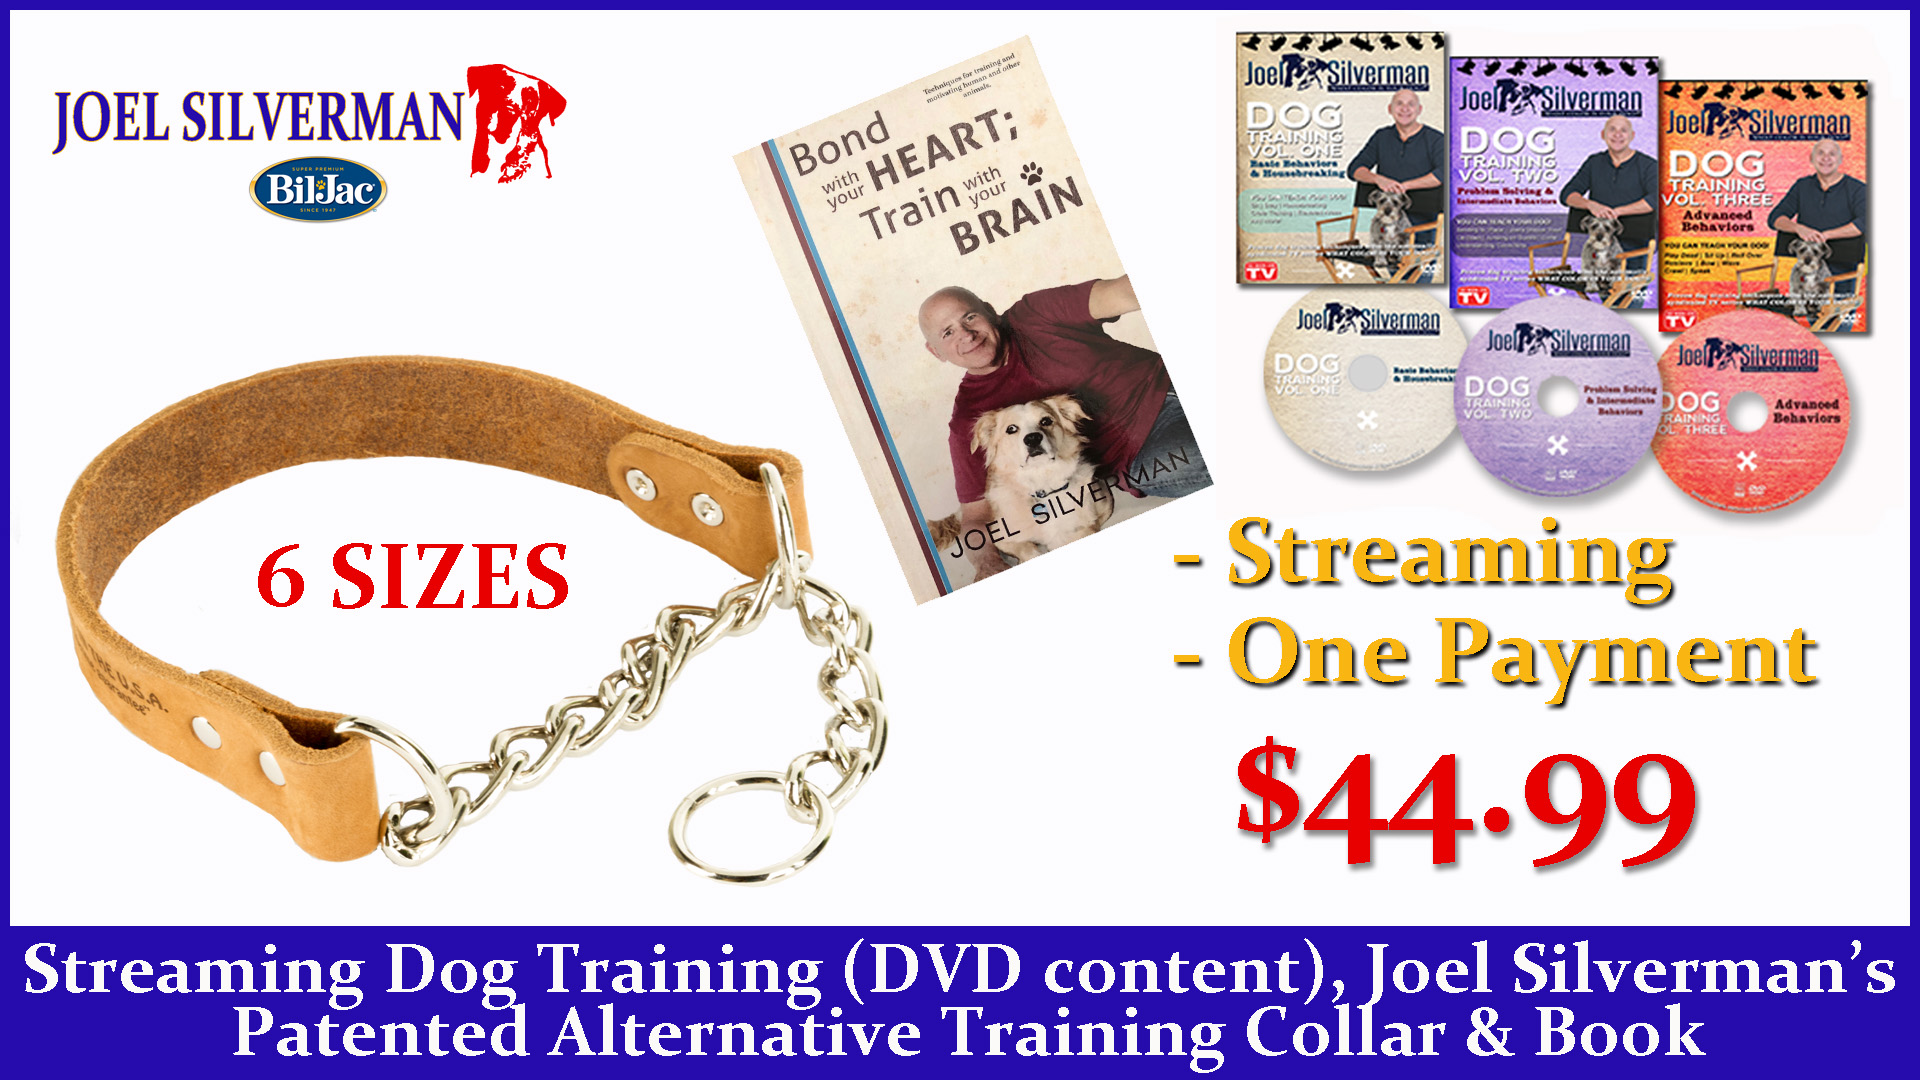 Streaming Dog Training – Basic, Intermediate, And Advanced + Alternative Training Collar + Bond With Your Heart; Train With Your Brain